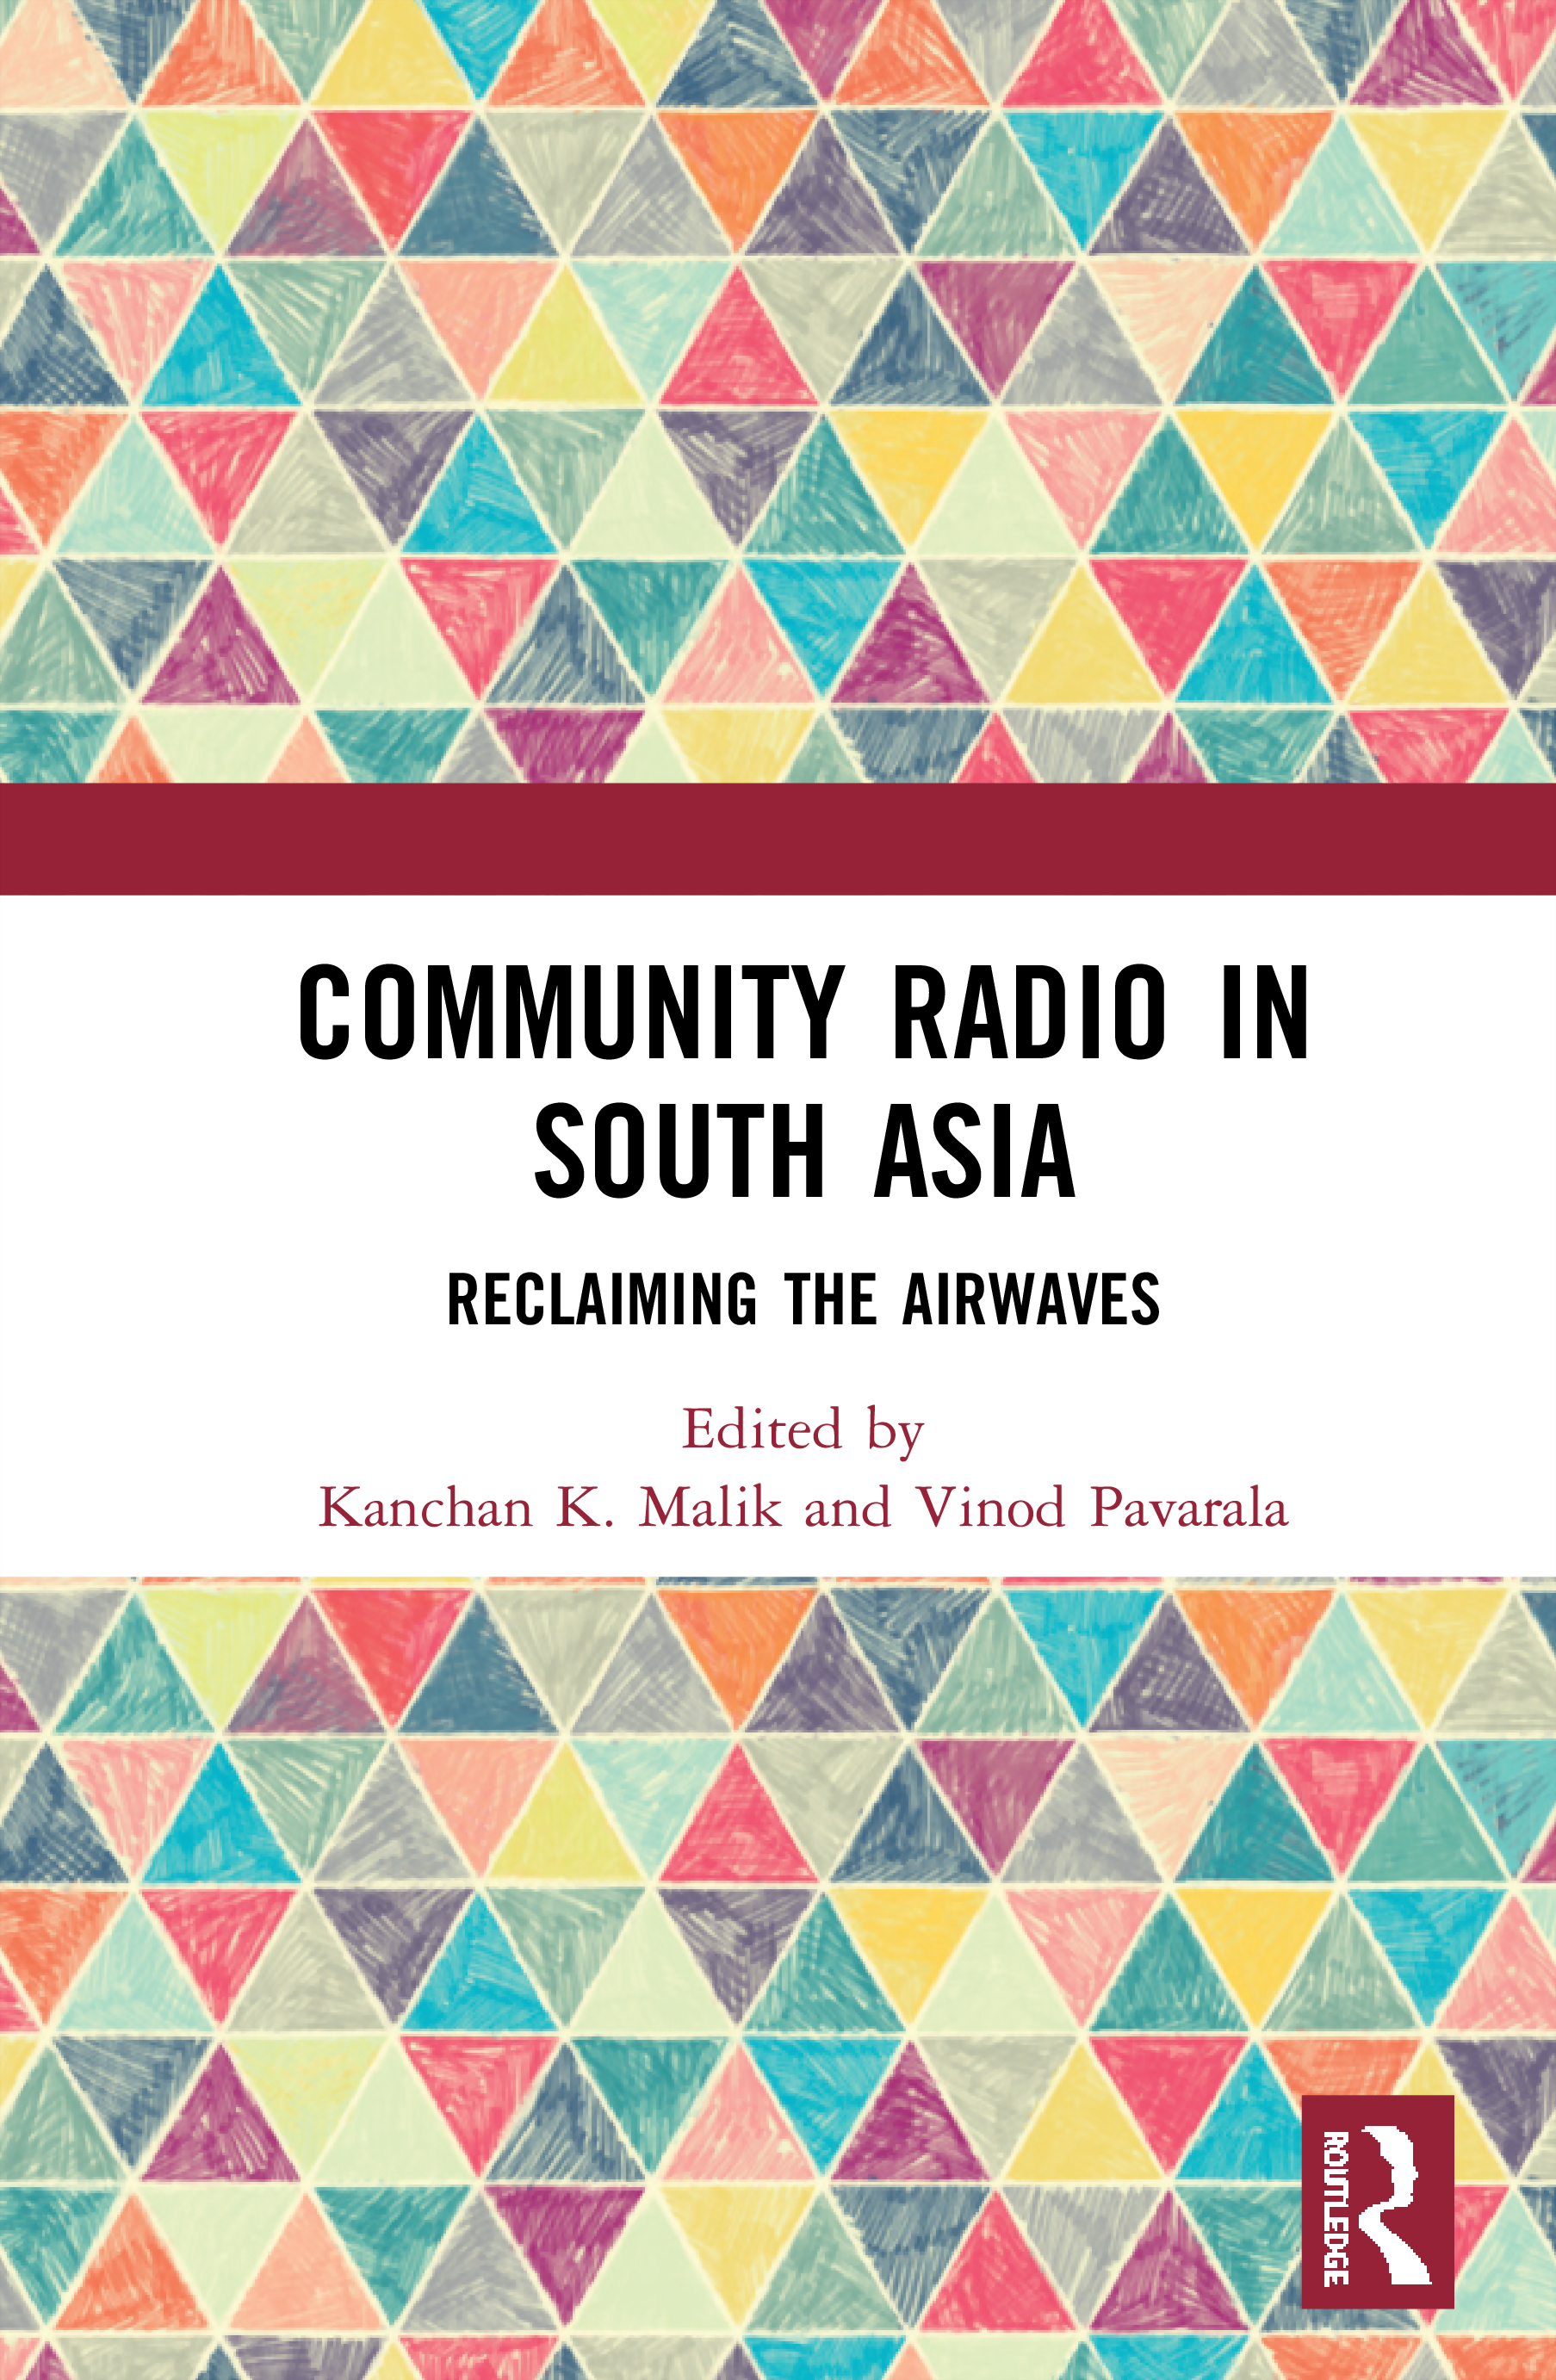 Community Radio in South Asia: Reclaiming the Airwaves book cover